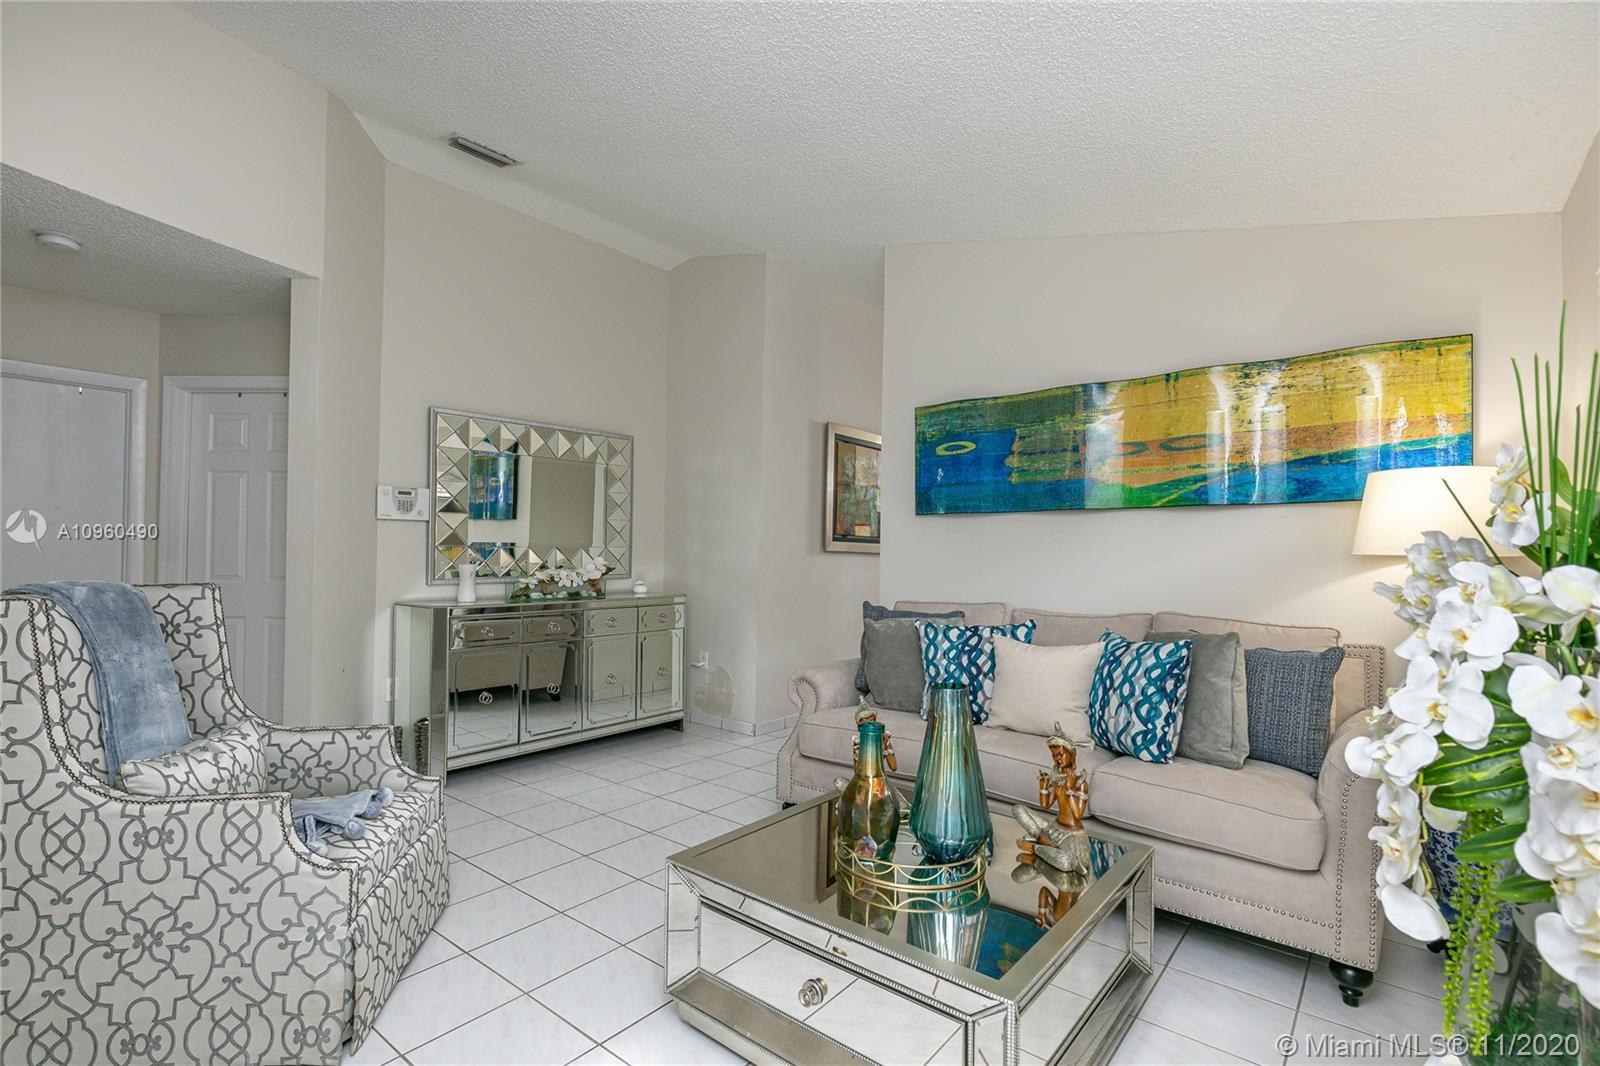 7437 W 30th Ln, Hialeah, Florida 33018, 3 Bedrooms Bedrooms, ,2 BathroomsBathrooms,Residential,For Sale,7437 W 30th Ln,A10960490